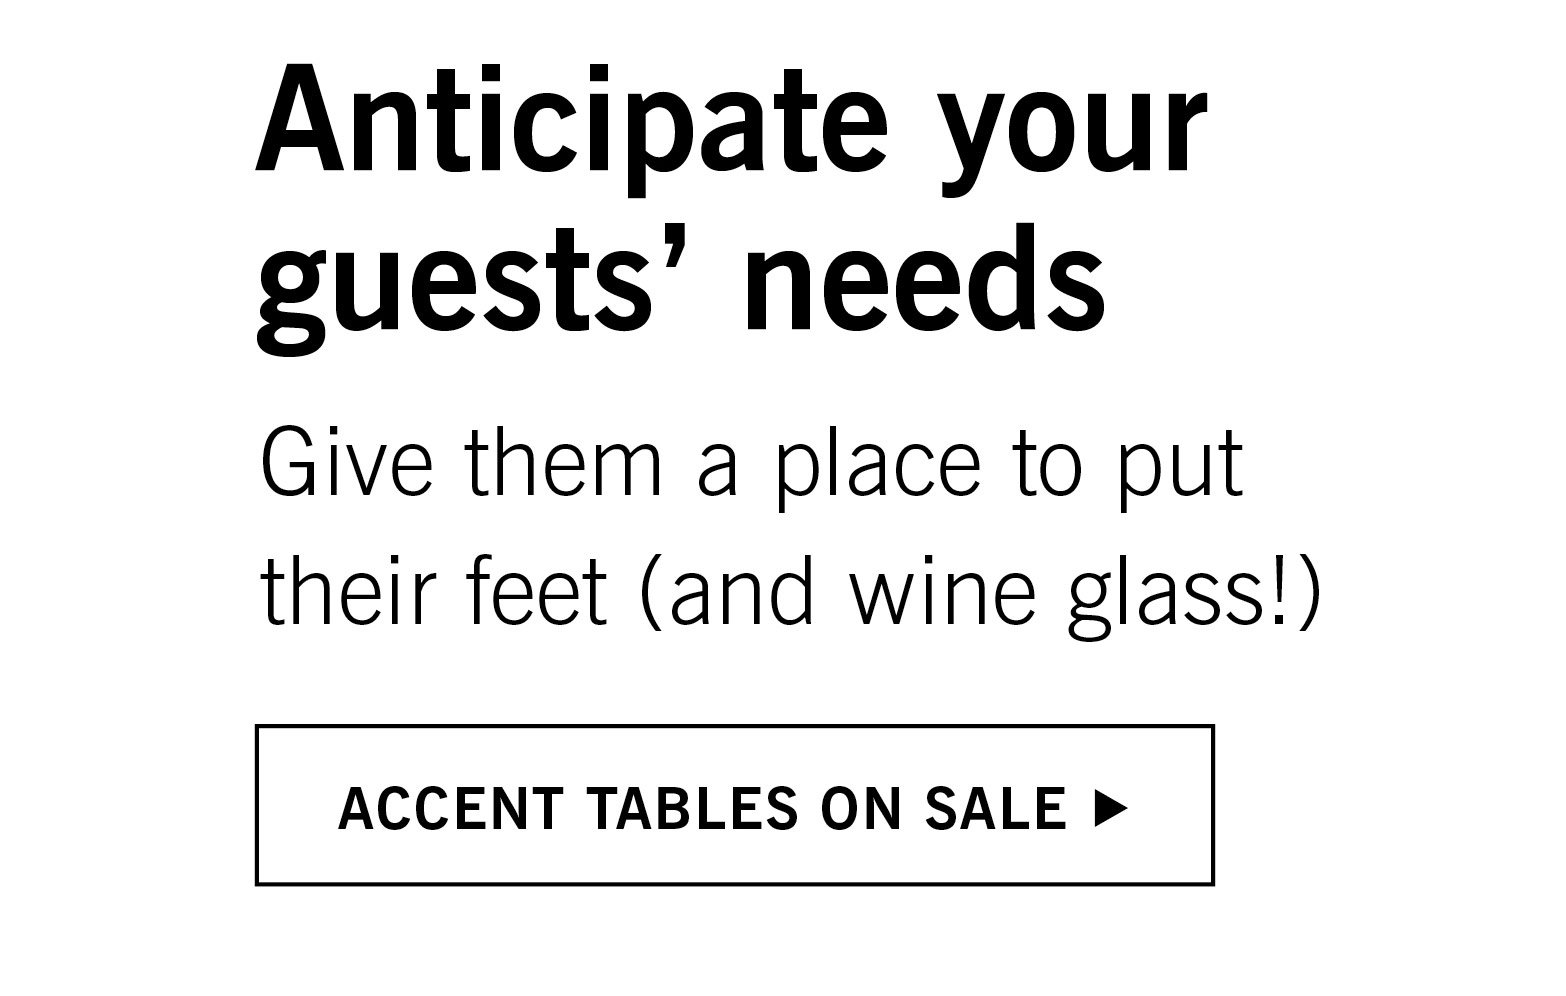 Accent Tables on Sale